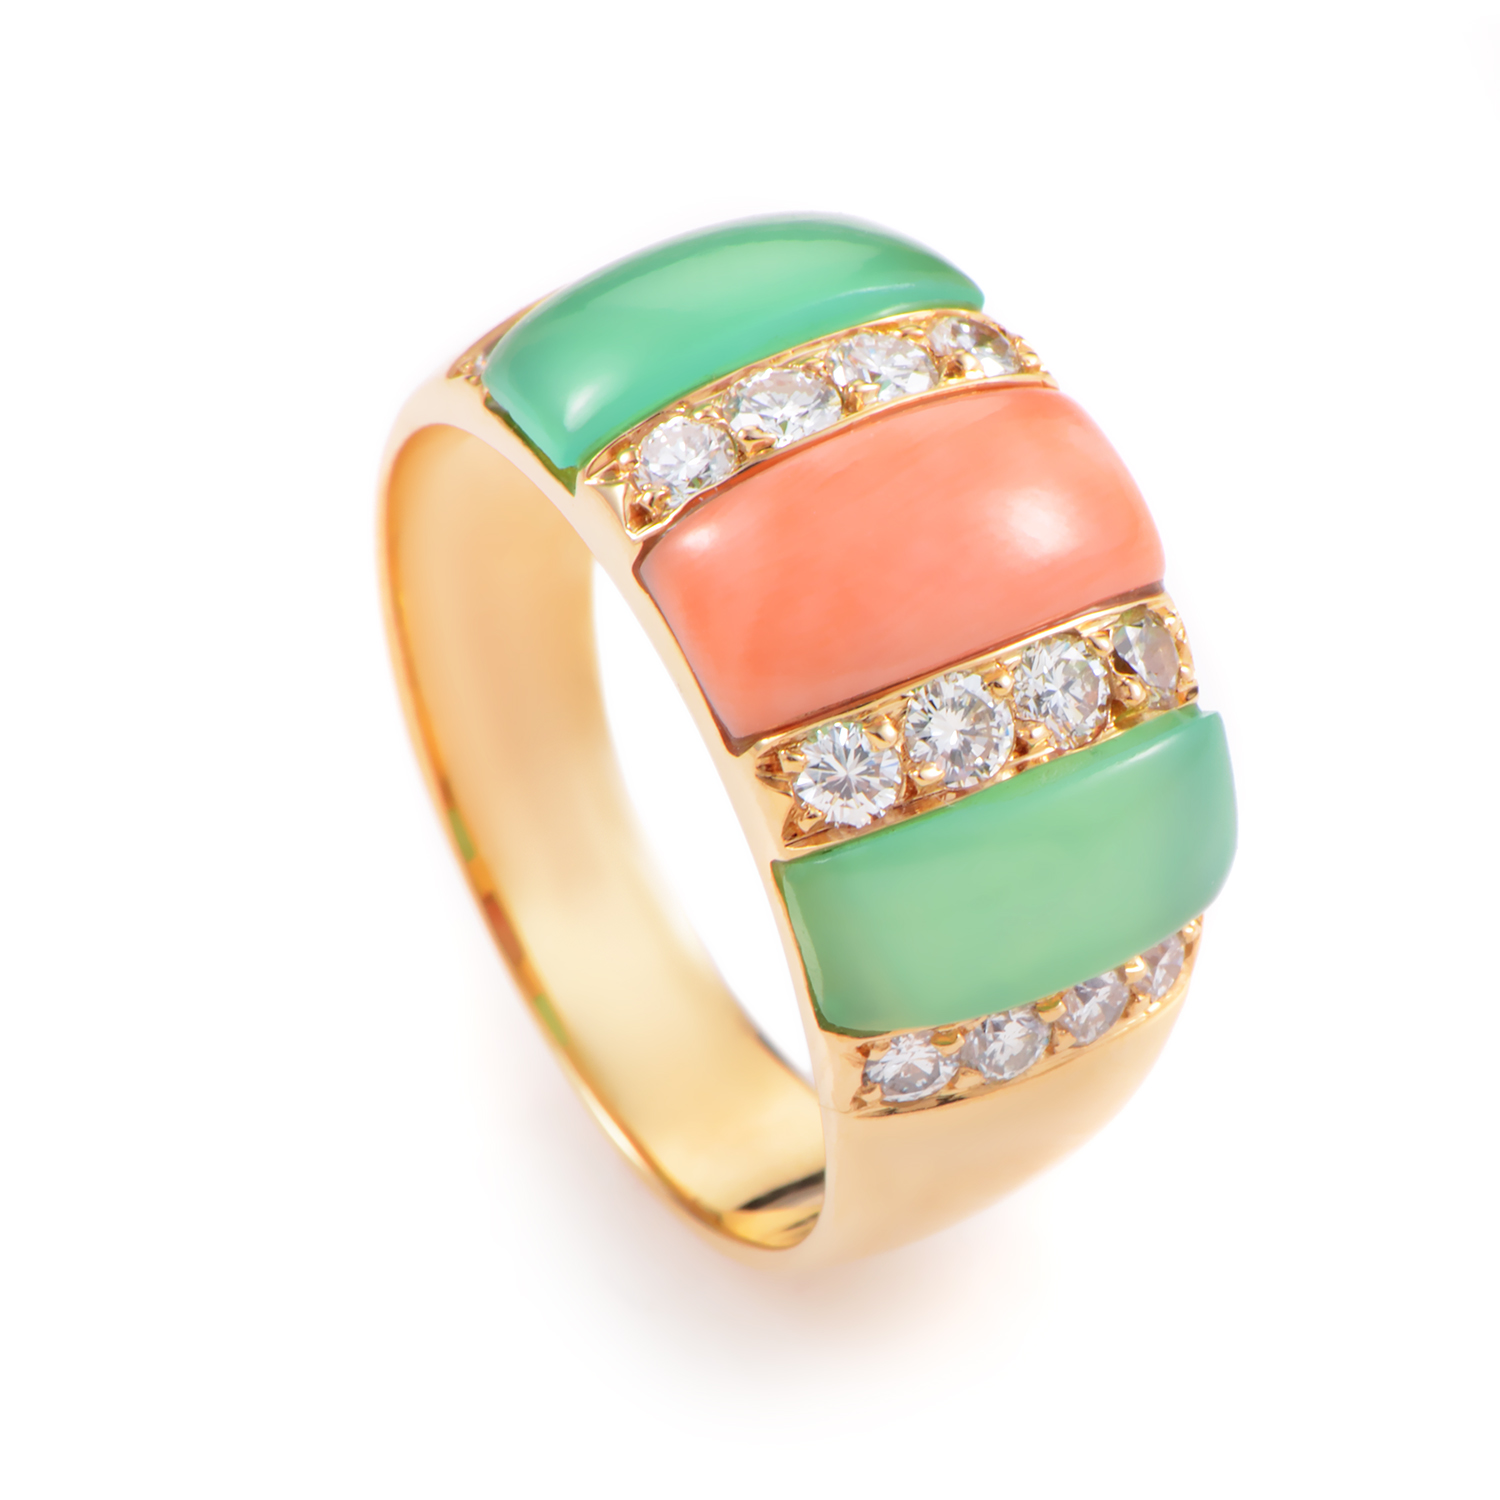 Van Cleef & Arpels Womens 18K Yellow Gold Diamond Coral and Chrysoprase Ring